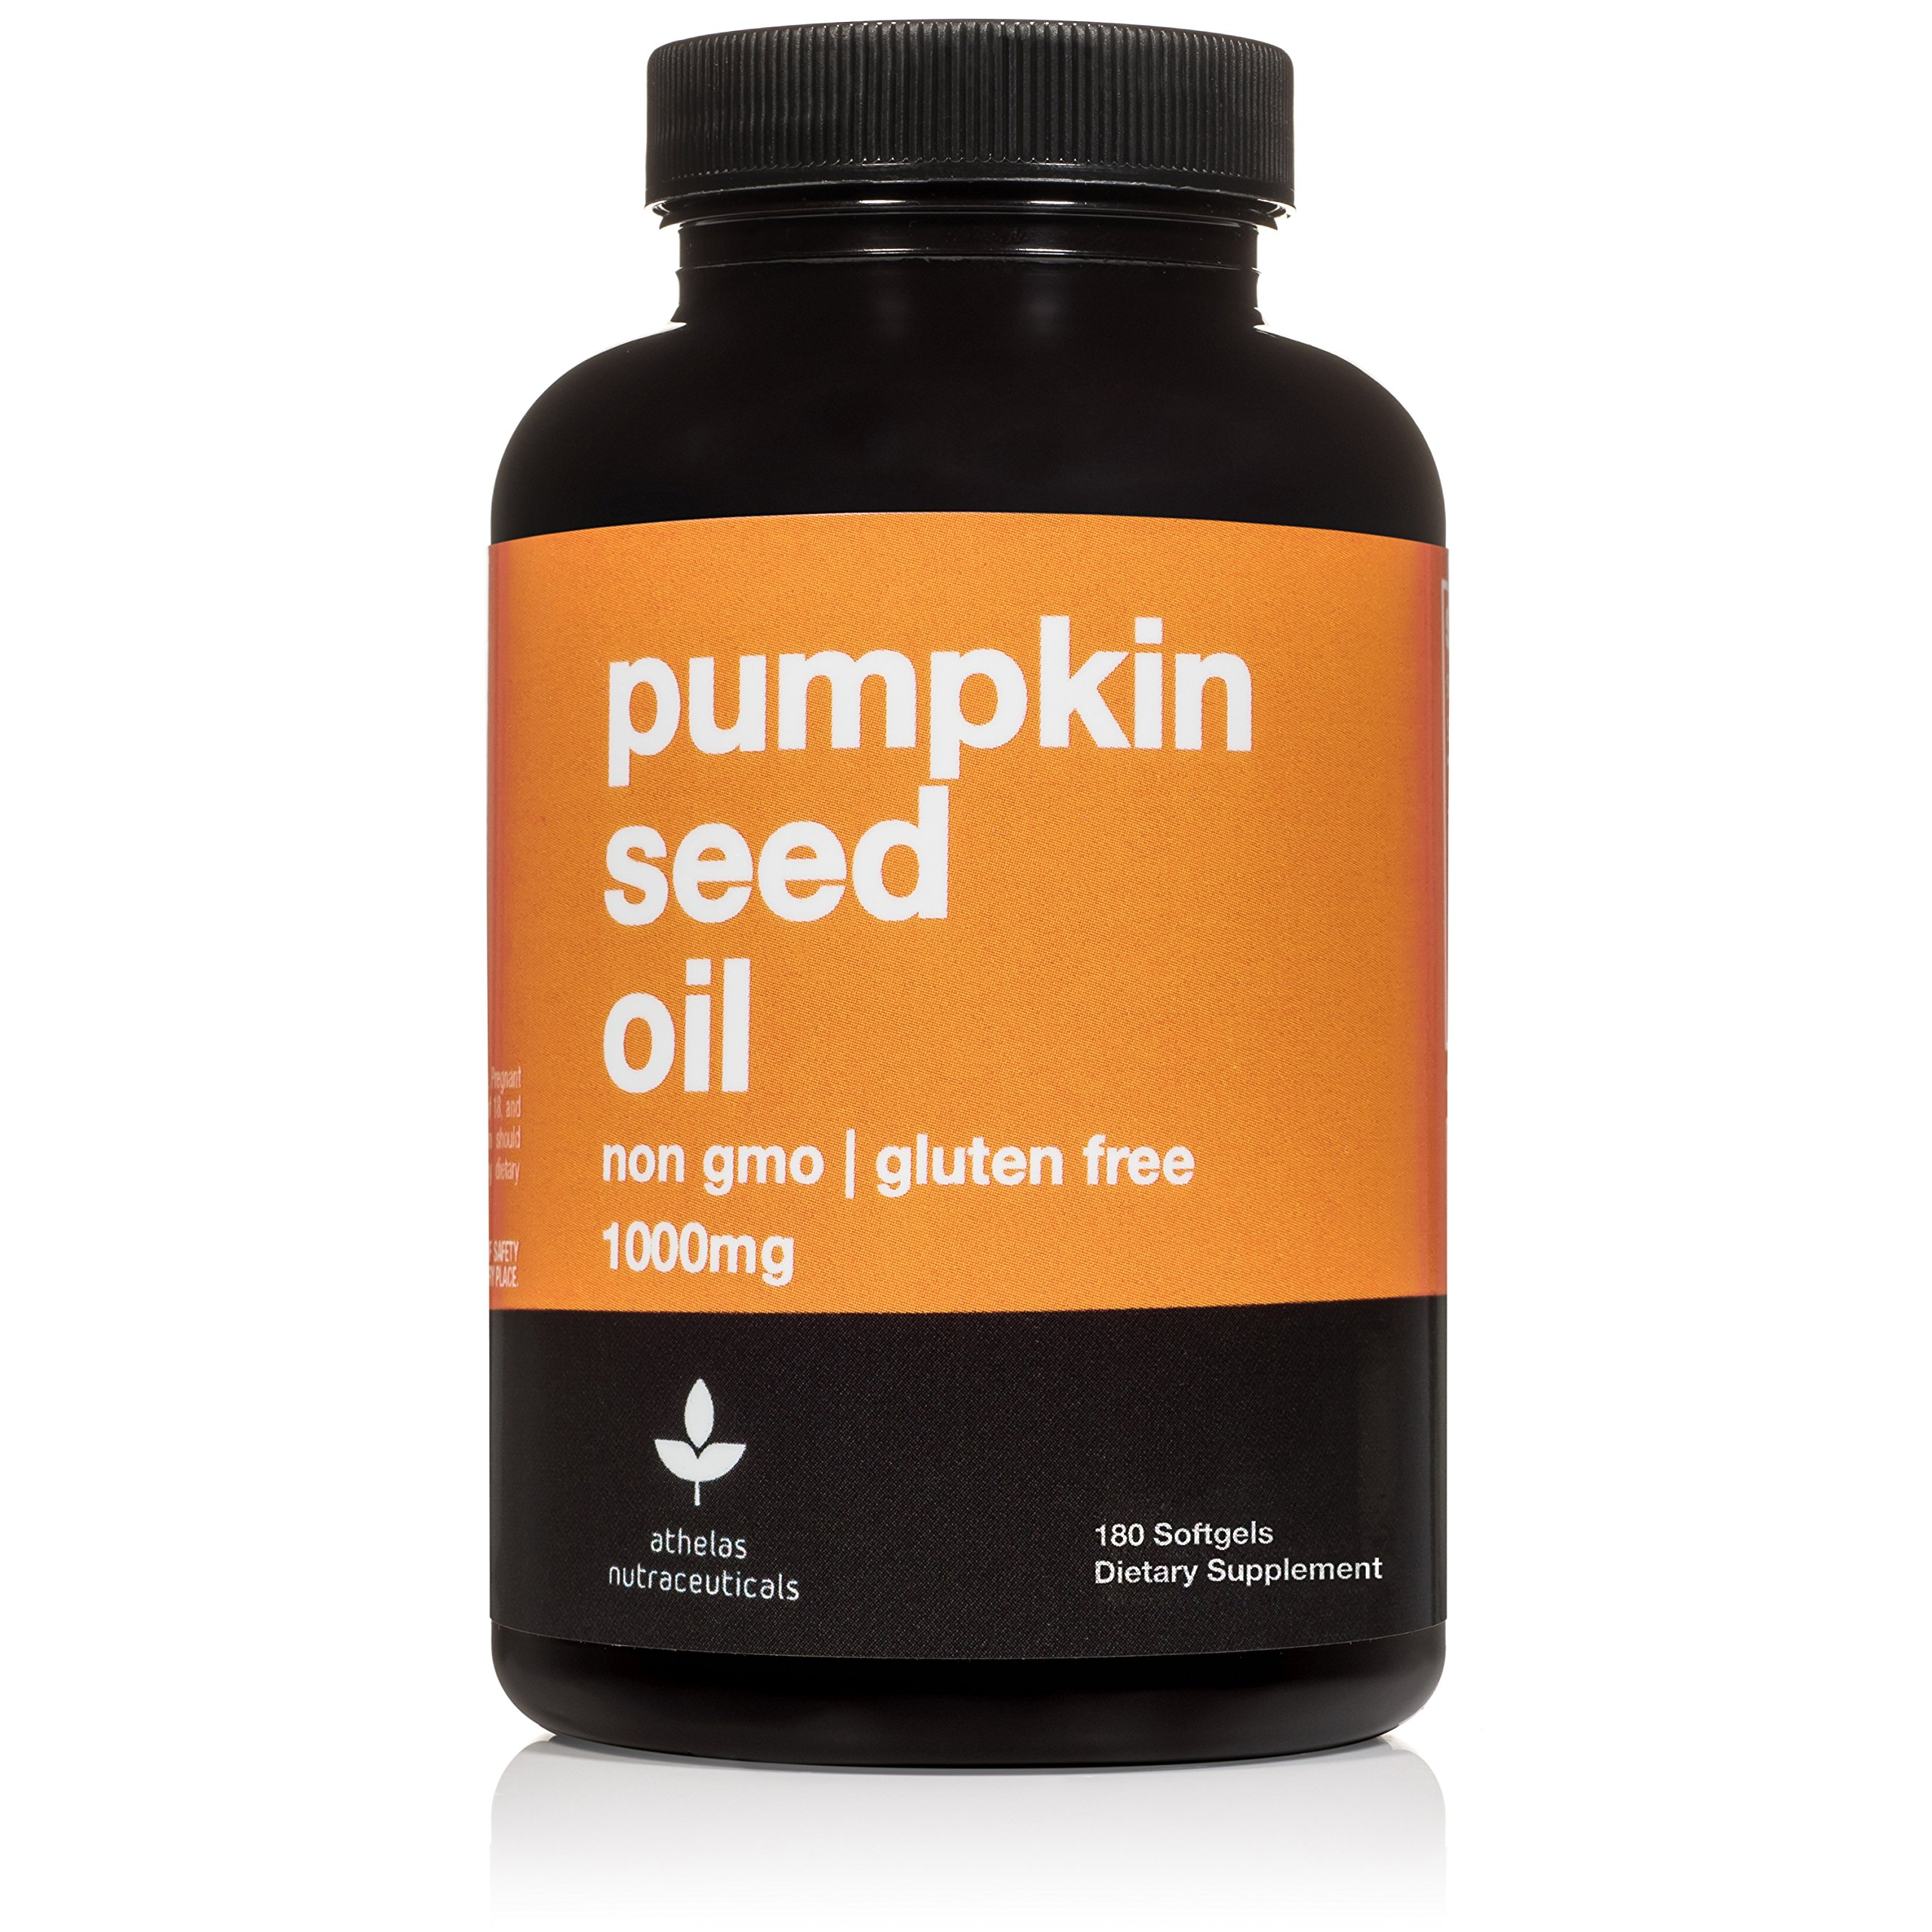 Pumpkin Seed Oil 1000mg - 180 Capsules - Non-GMO Premium Cold Pressed Prostate and Urinary Tract Support - Bladder Regulation and Control - Softgel Capsules Supplement